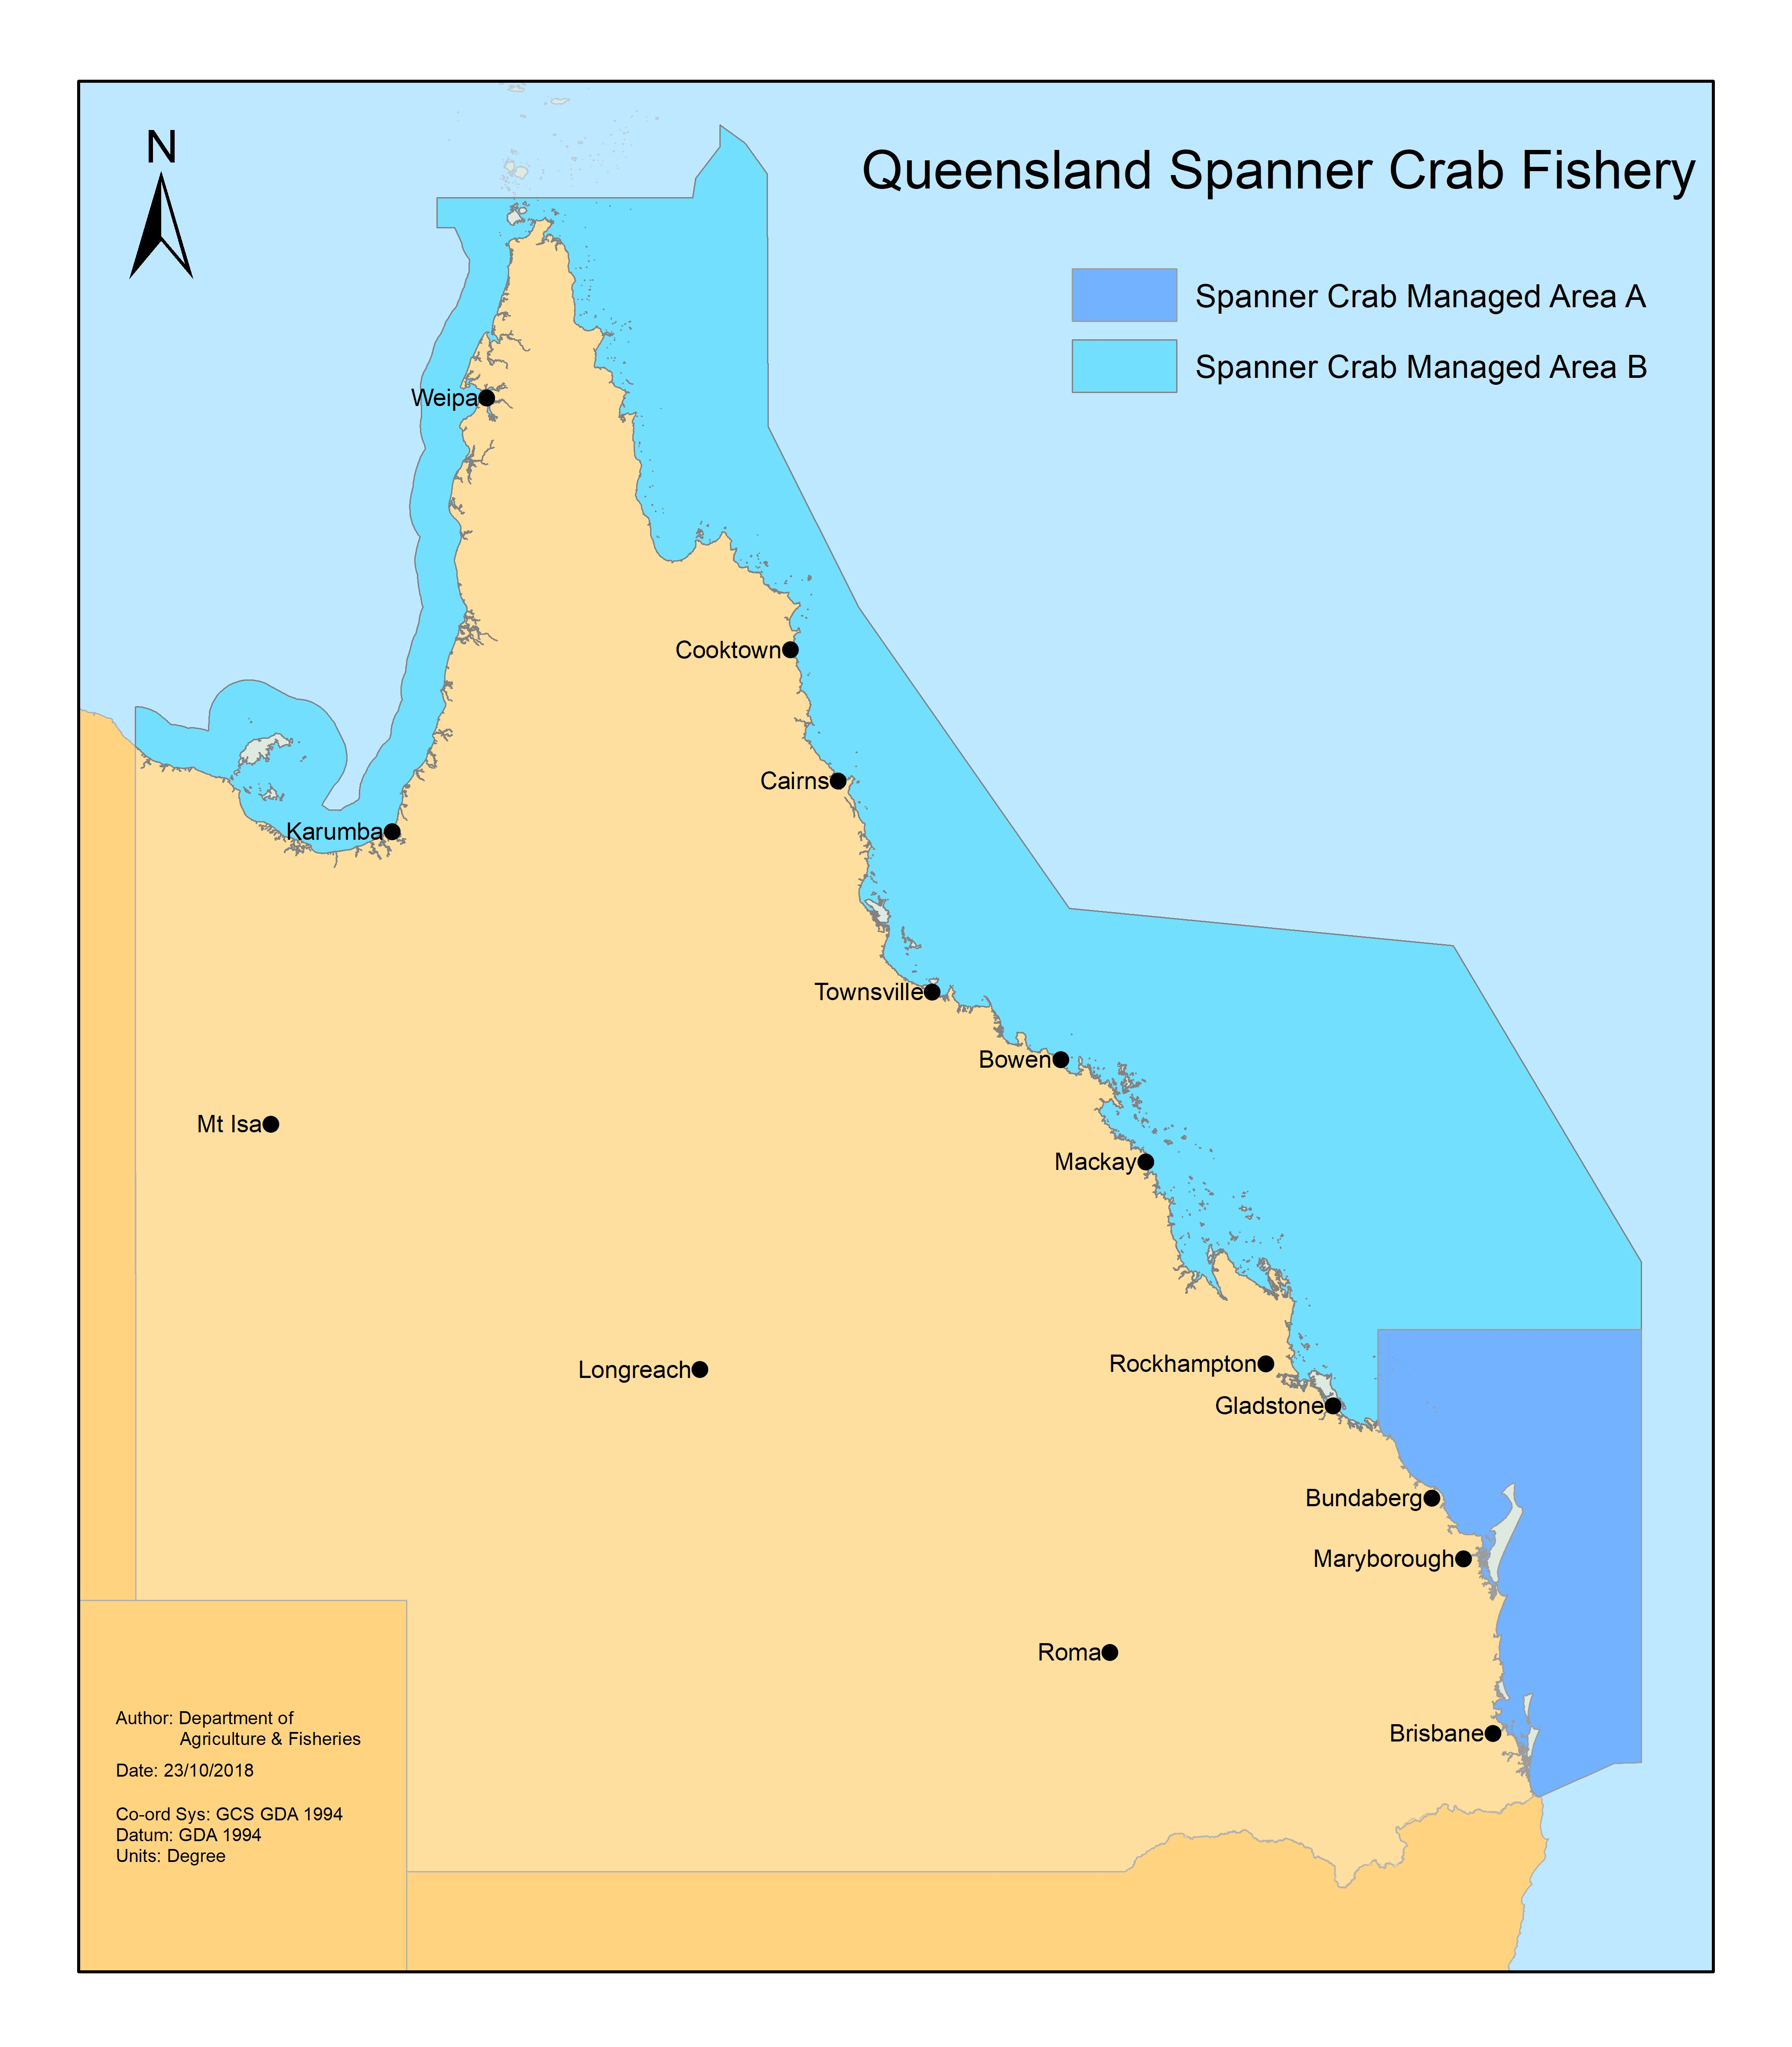 For accessible information about this map, please contact us on 13 25 23our